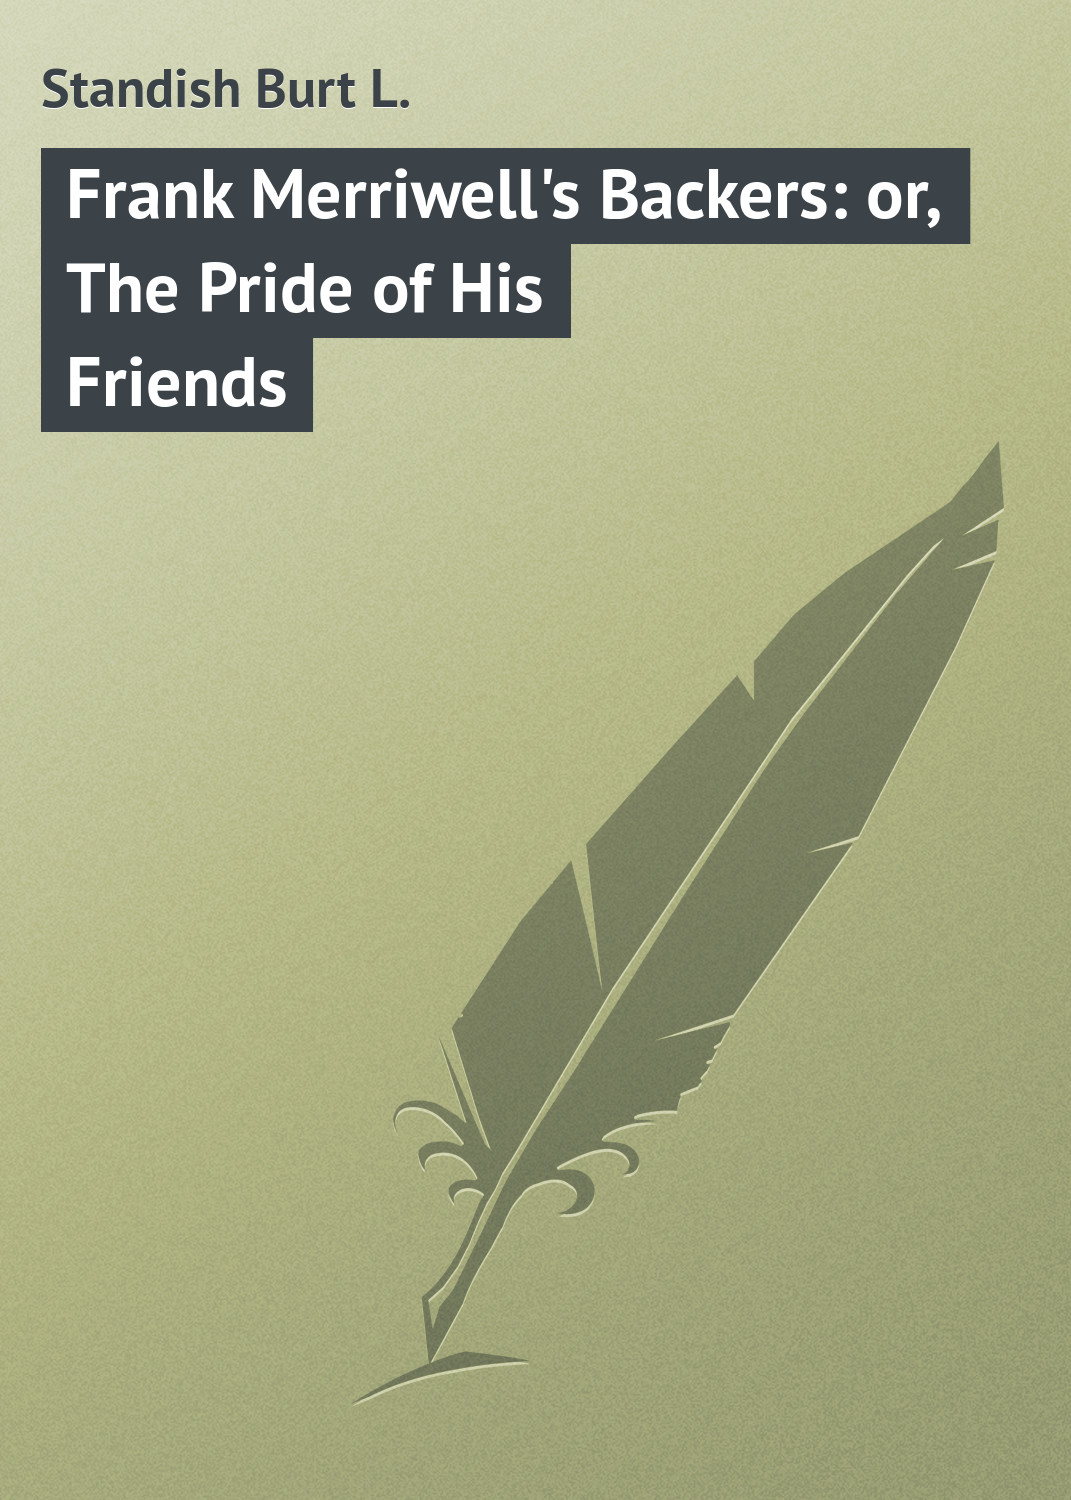 Frank Merriwell's Backers: or, The Pride of His Friends